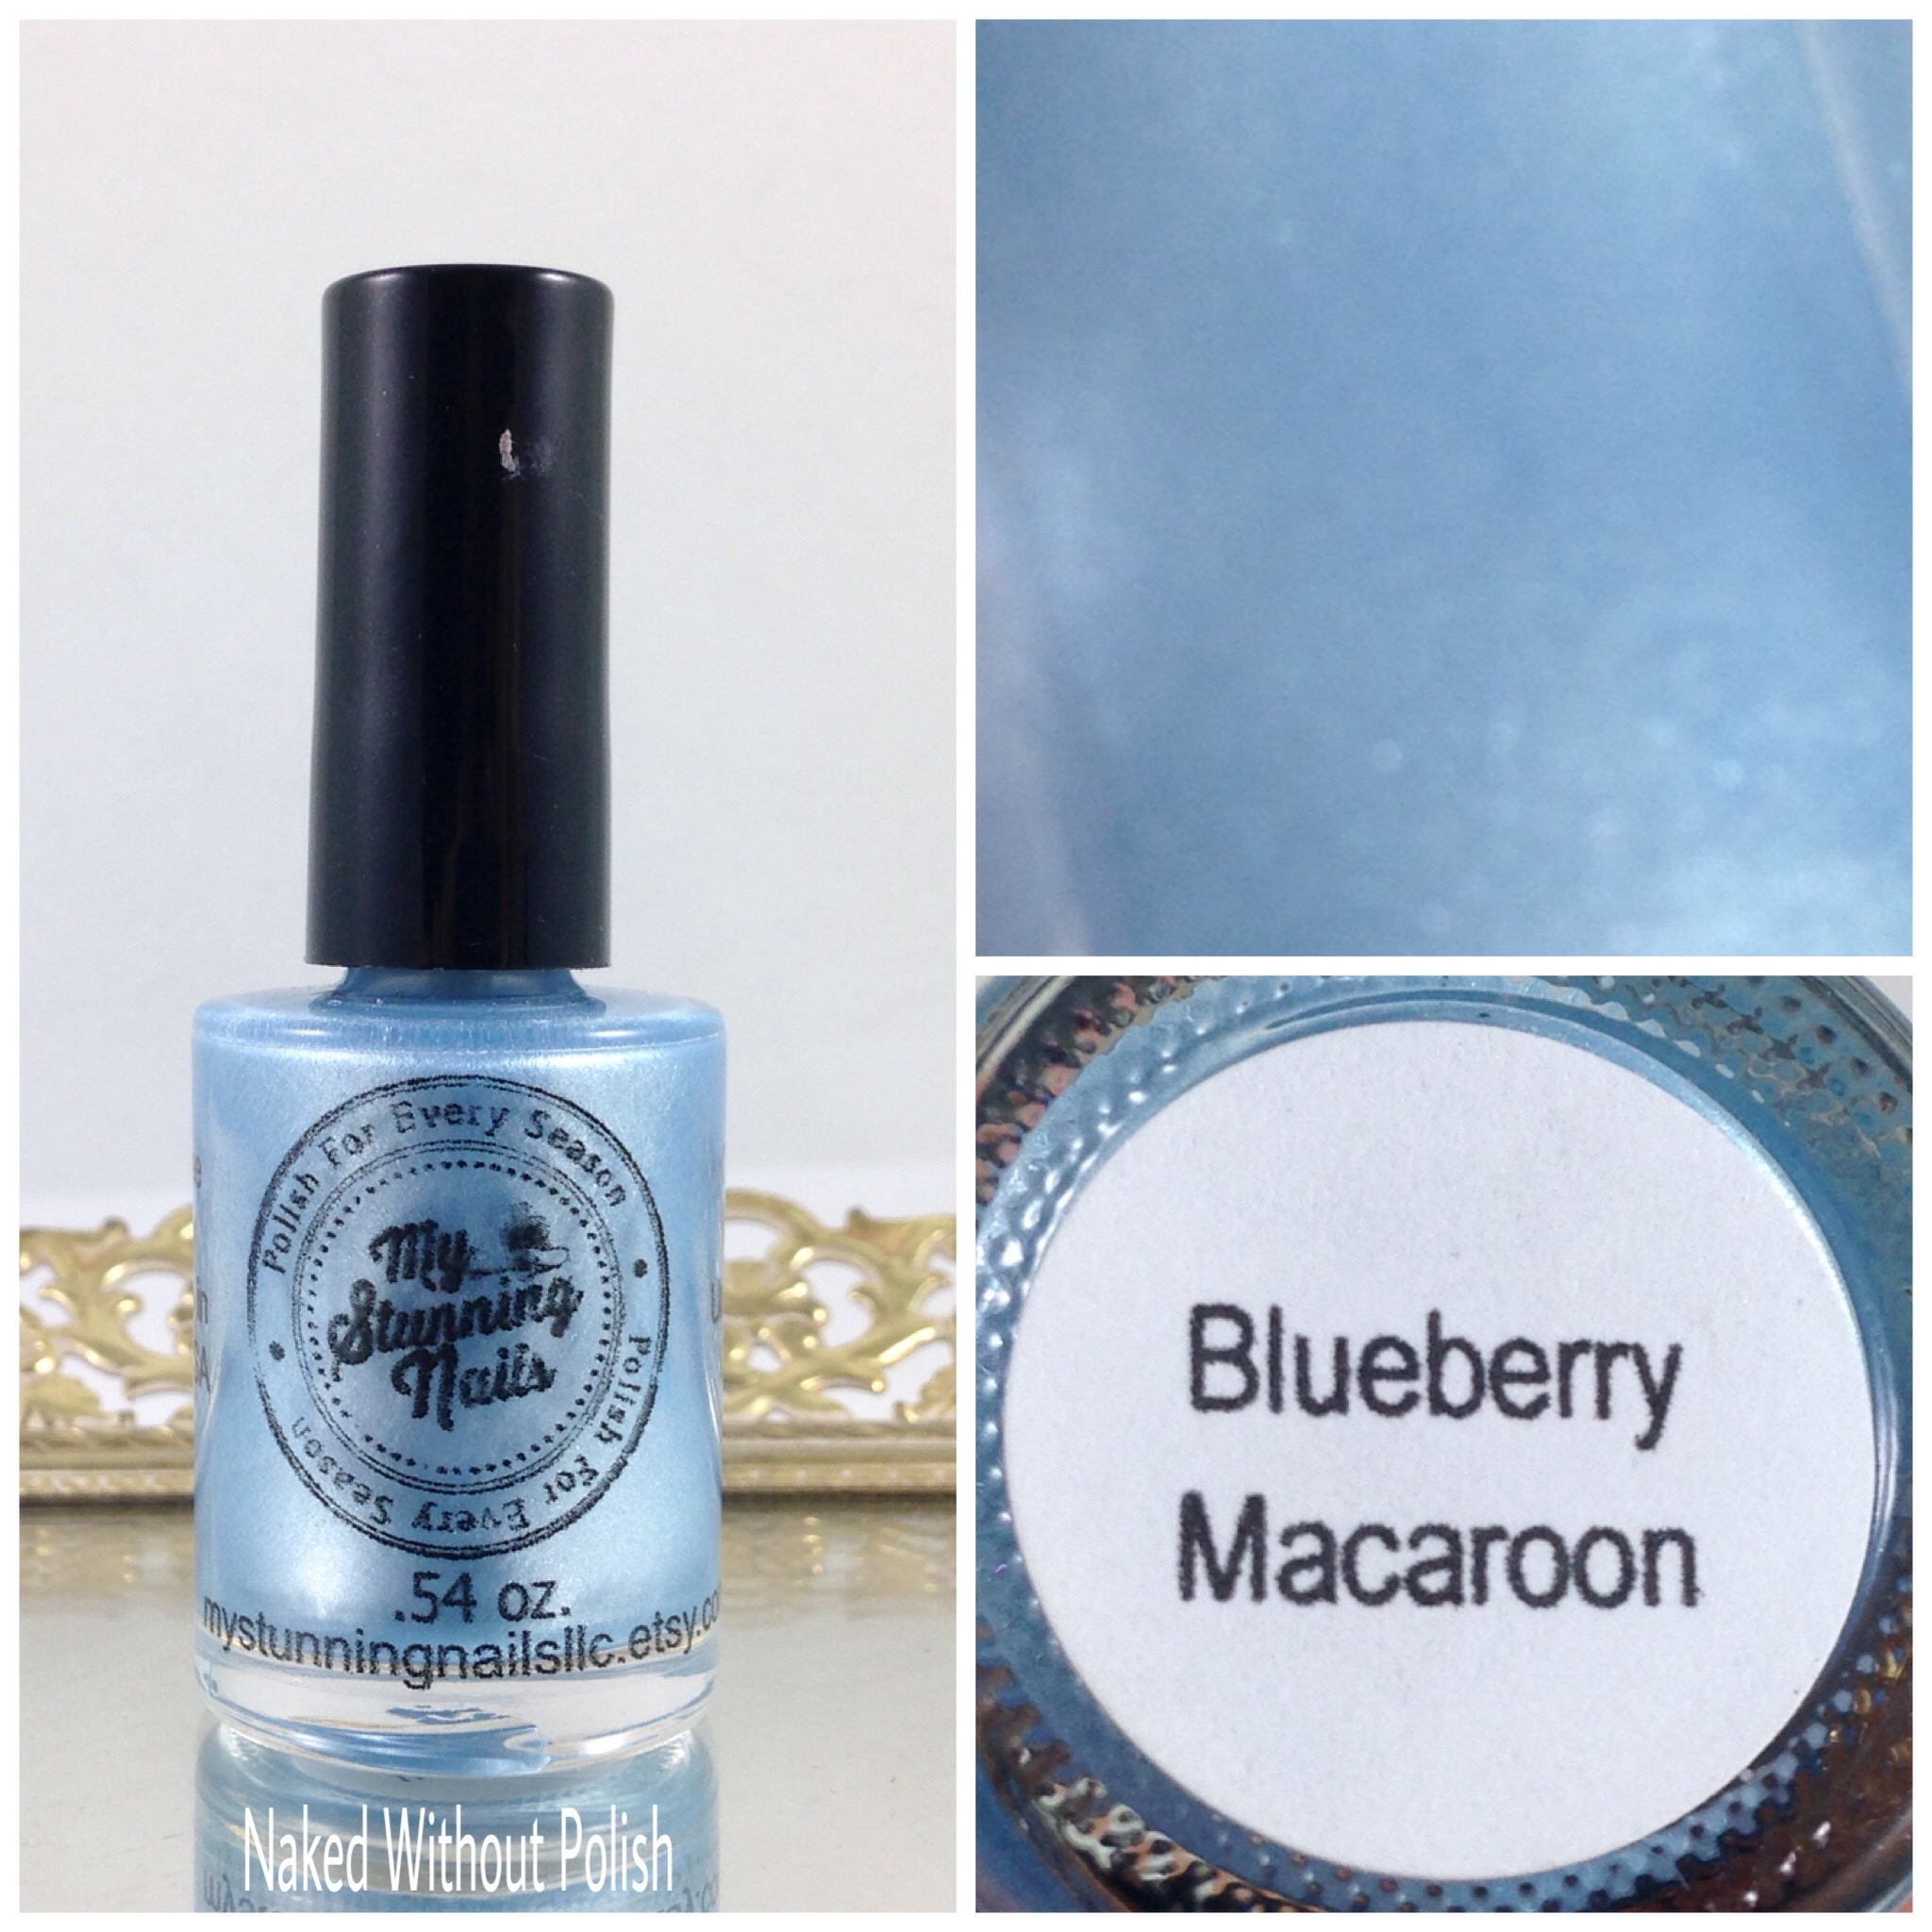 My-Stunning-Nails-Blueberry-Macaroon-1